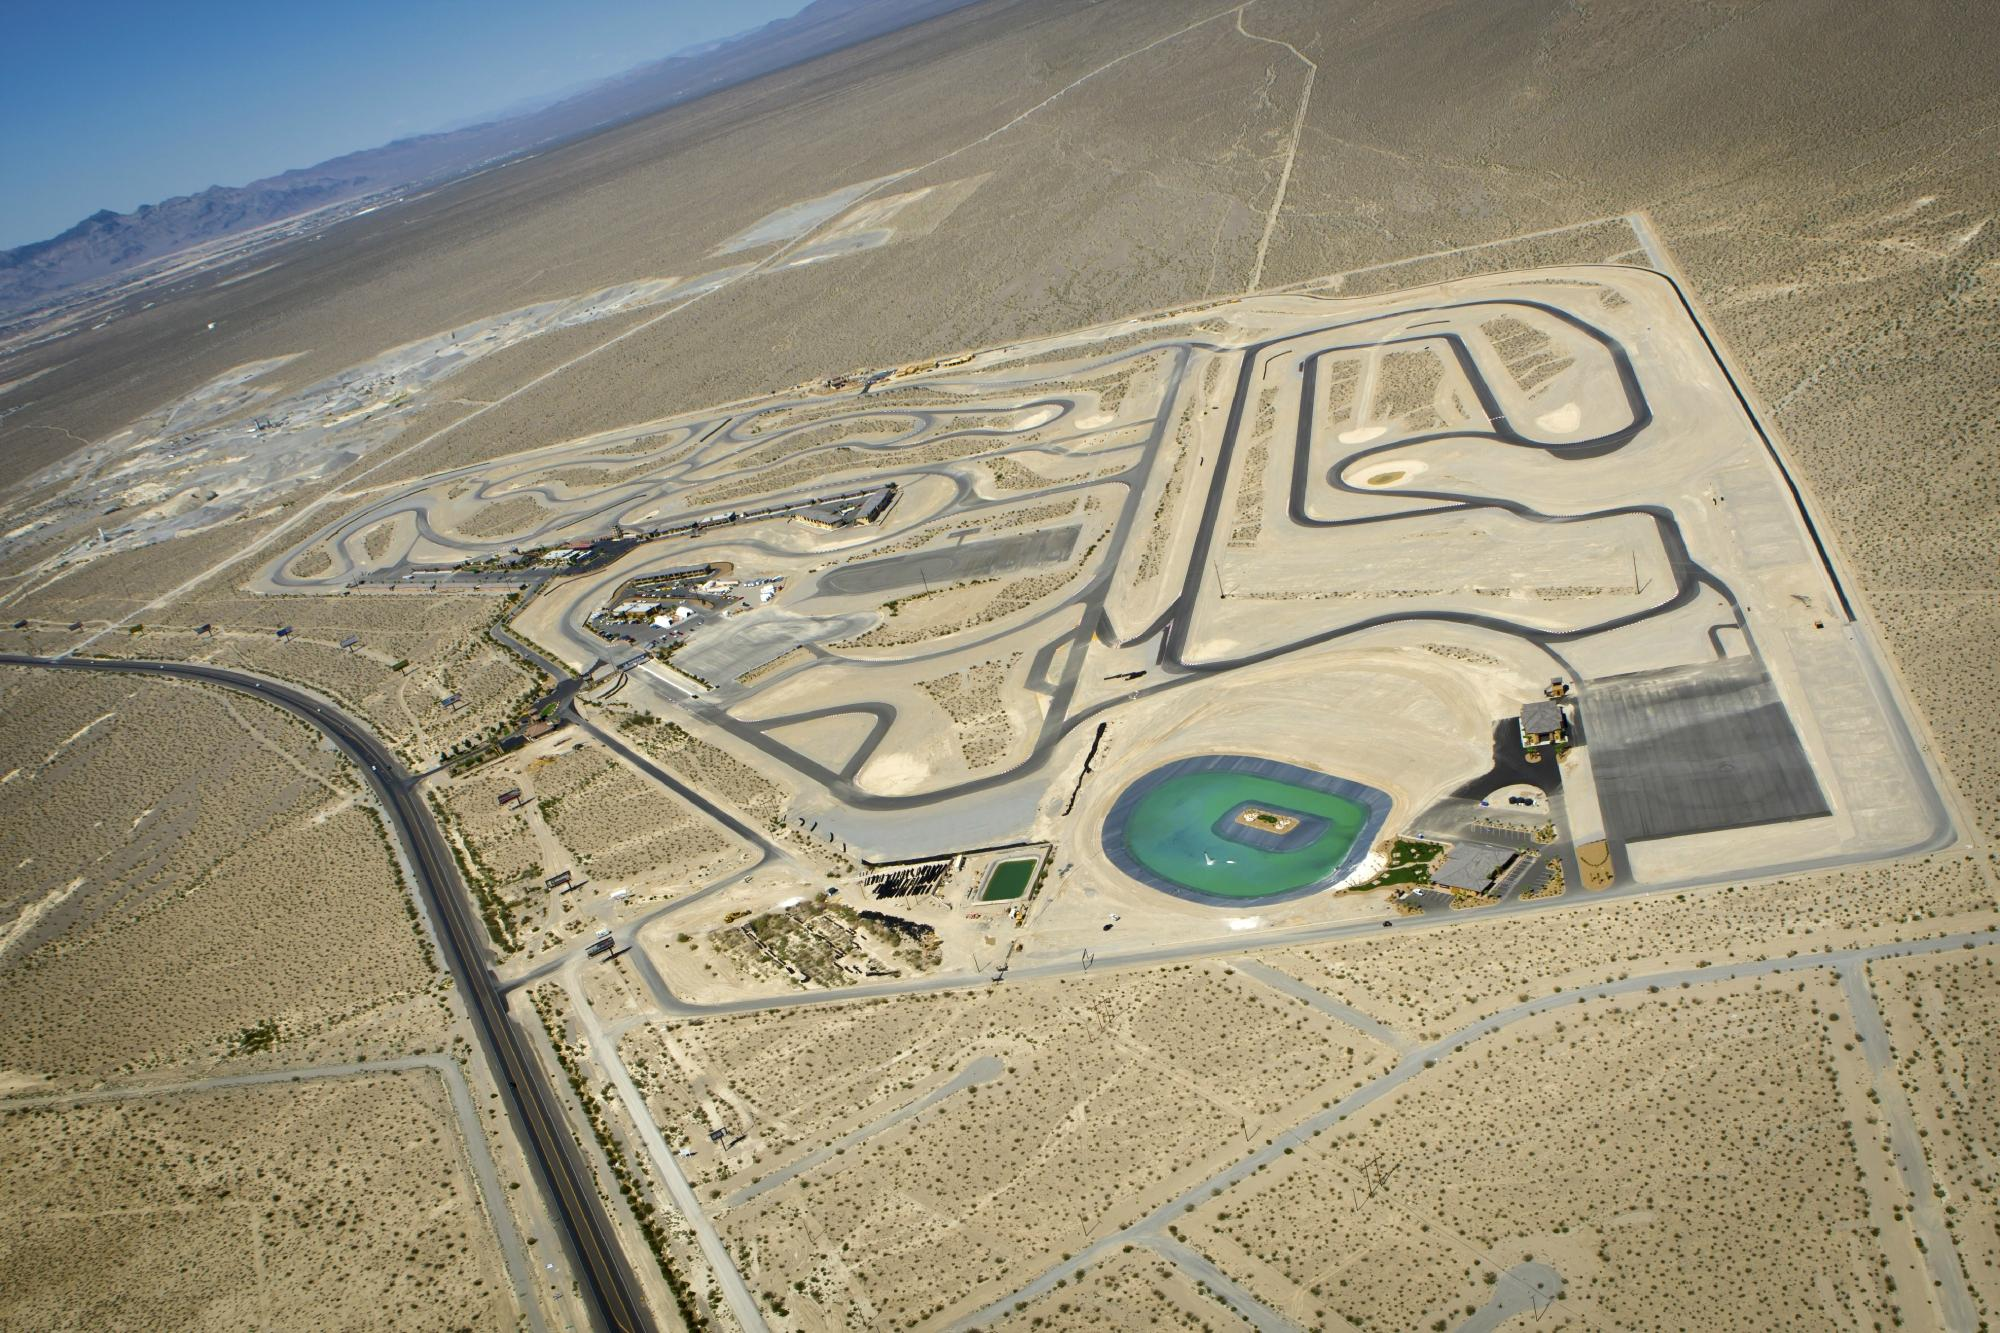 The World's Longest Racetrack Will Soon Be Found In The Nevada Desert